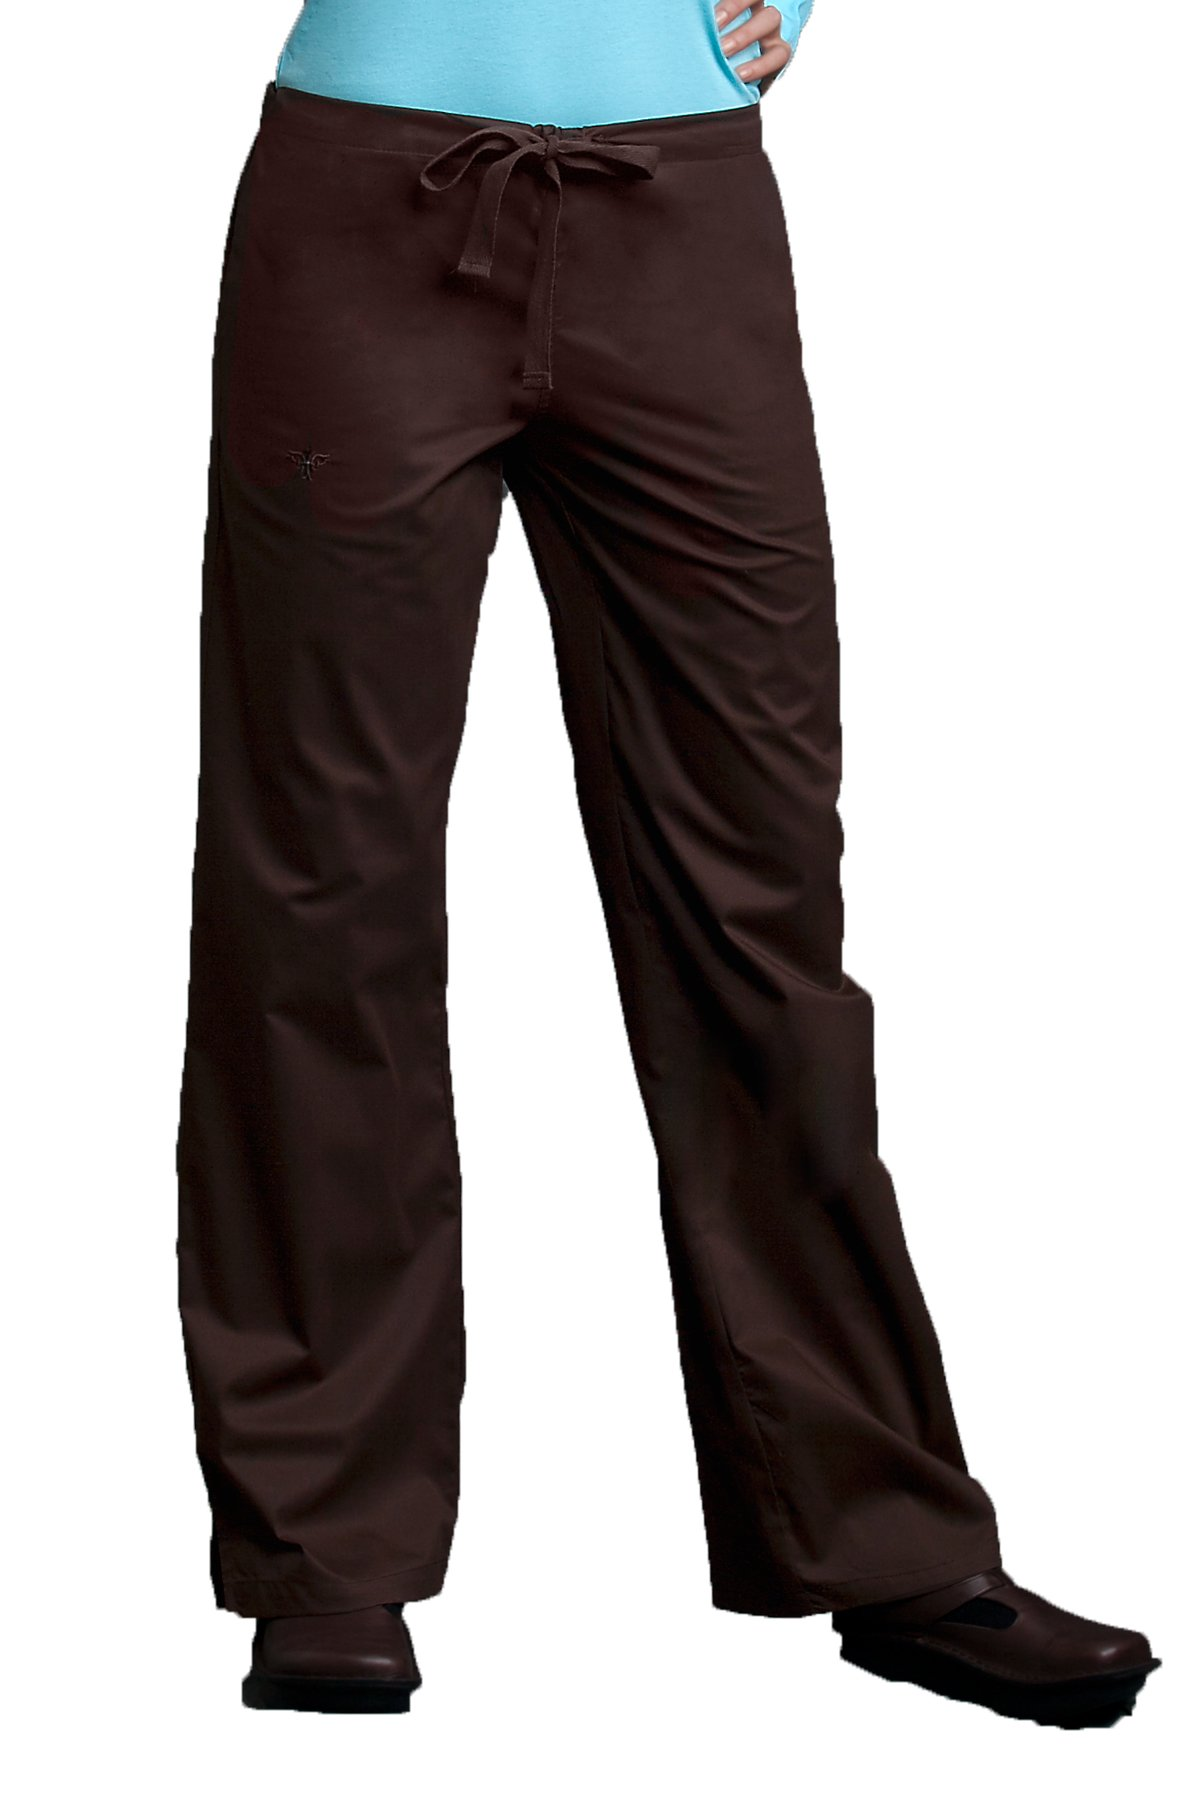 Med Couture Women's Signature 8705 Drawstring/Elastic 3 Pocket Scrub Pant- Expresso Brown- X-Large